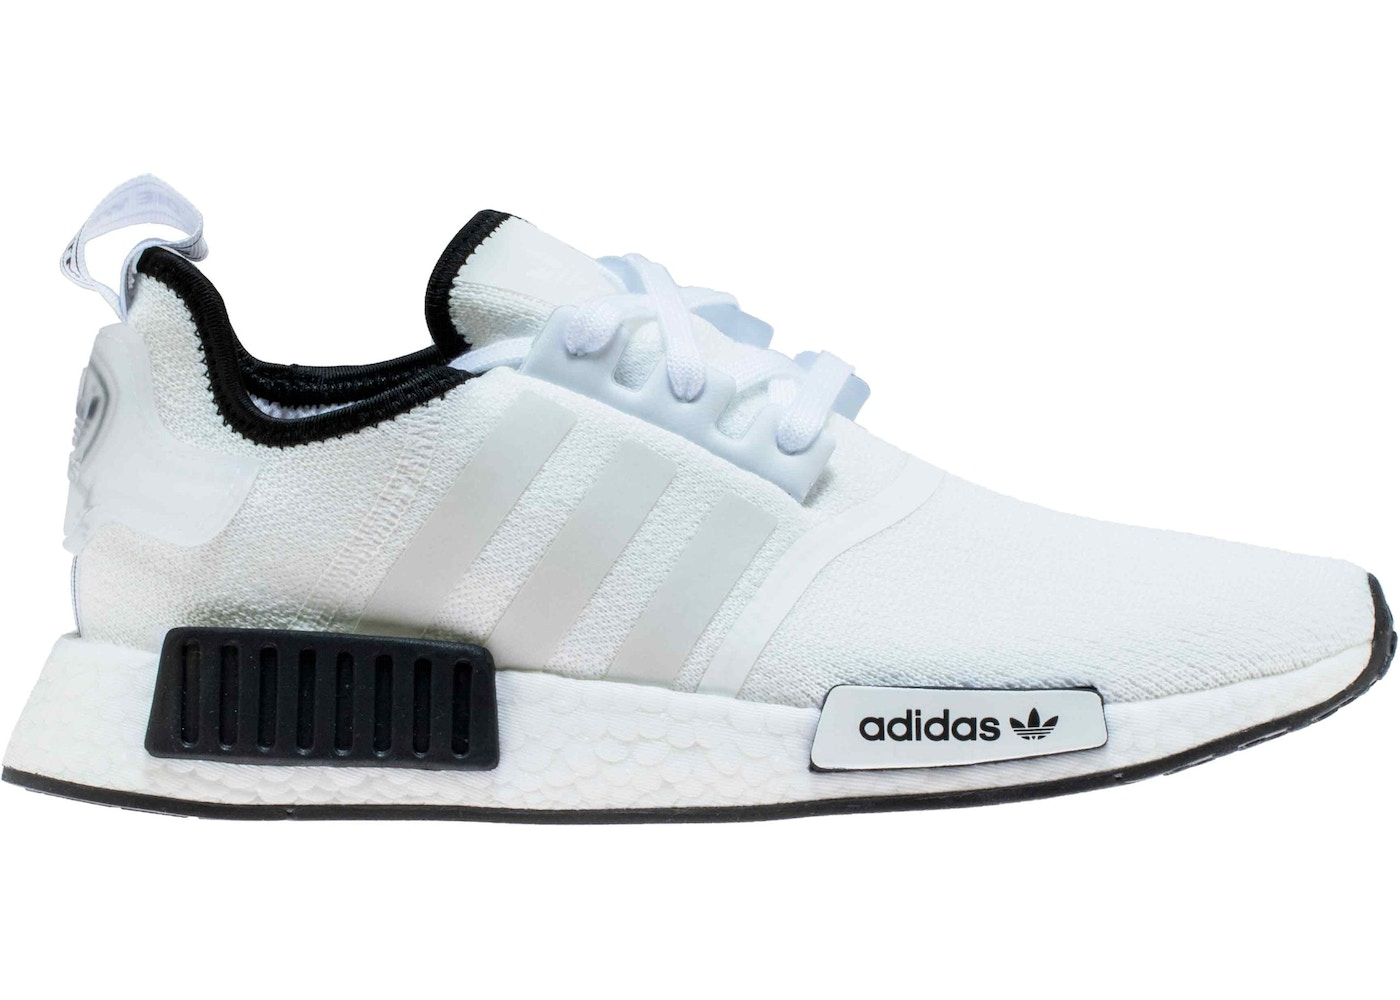 lowest price eb2d0 1fb41 adidas NMD R1 Cloud White Core Black